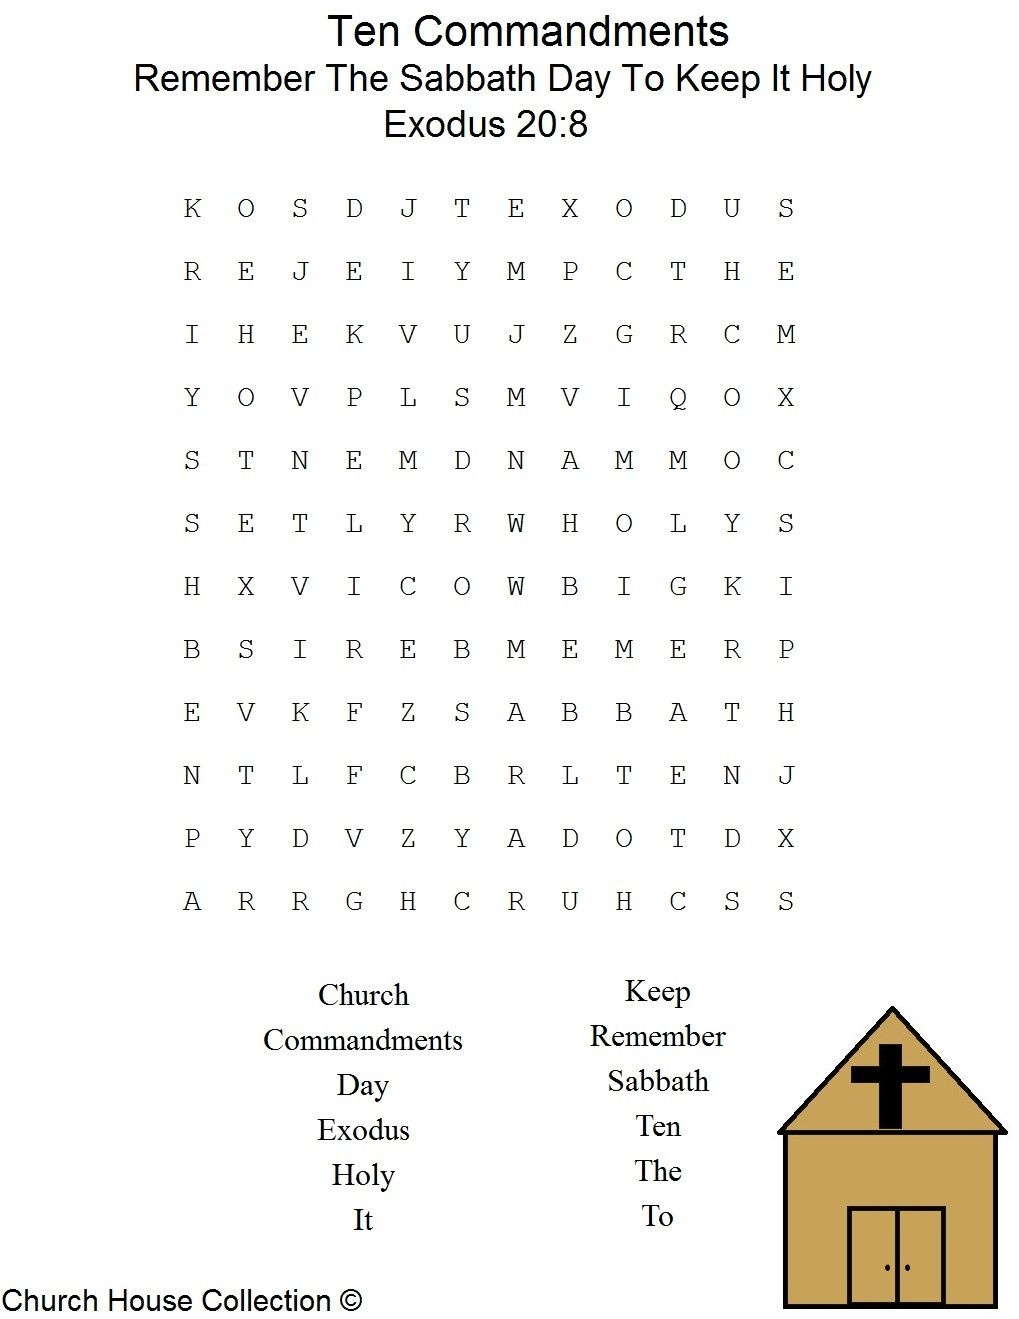 This Is A Free Printable Ten Commandments Word Find Puzzle For The - Free Catholic Ten Commandments Printable